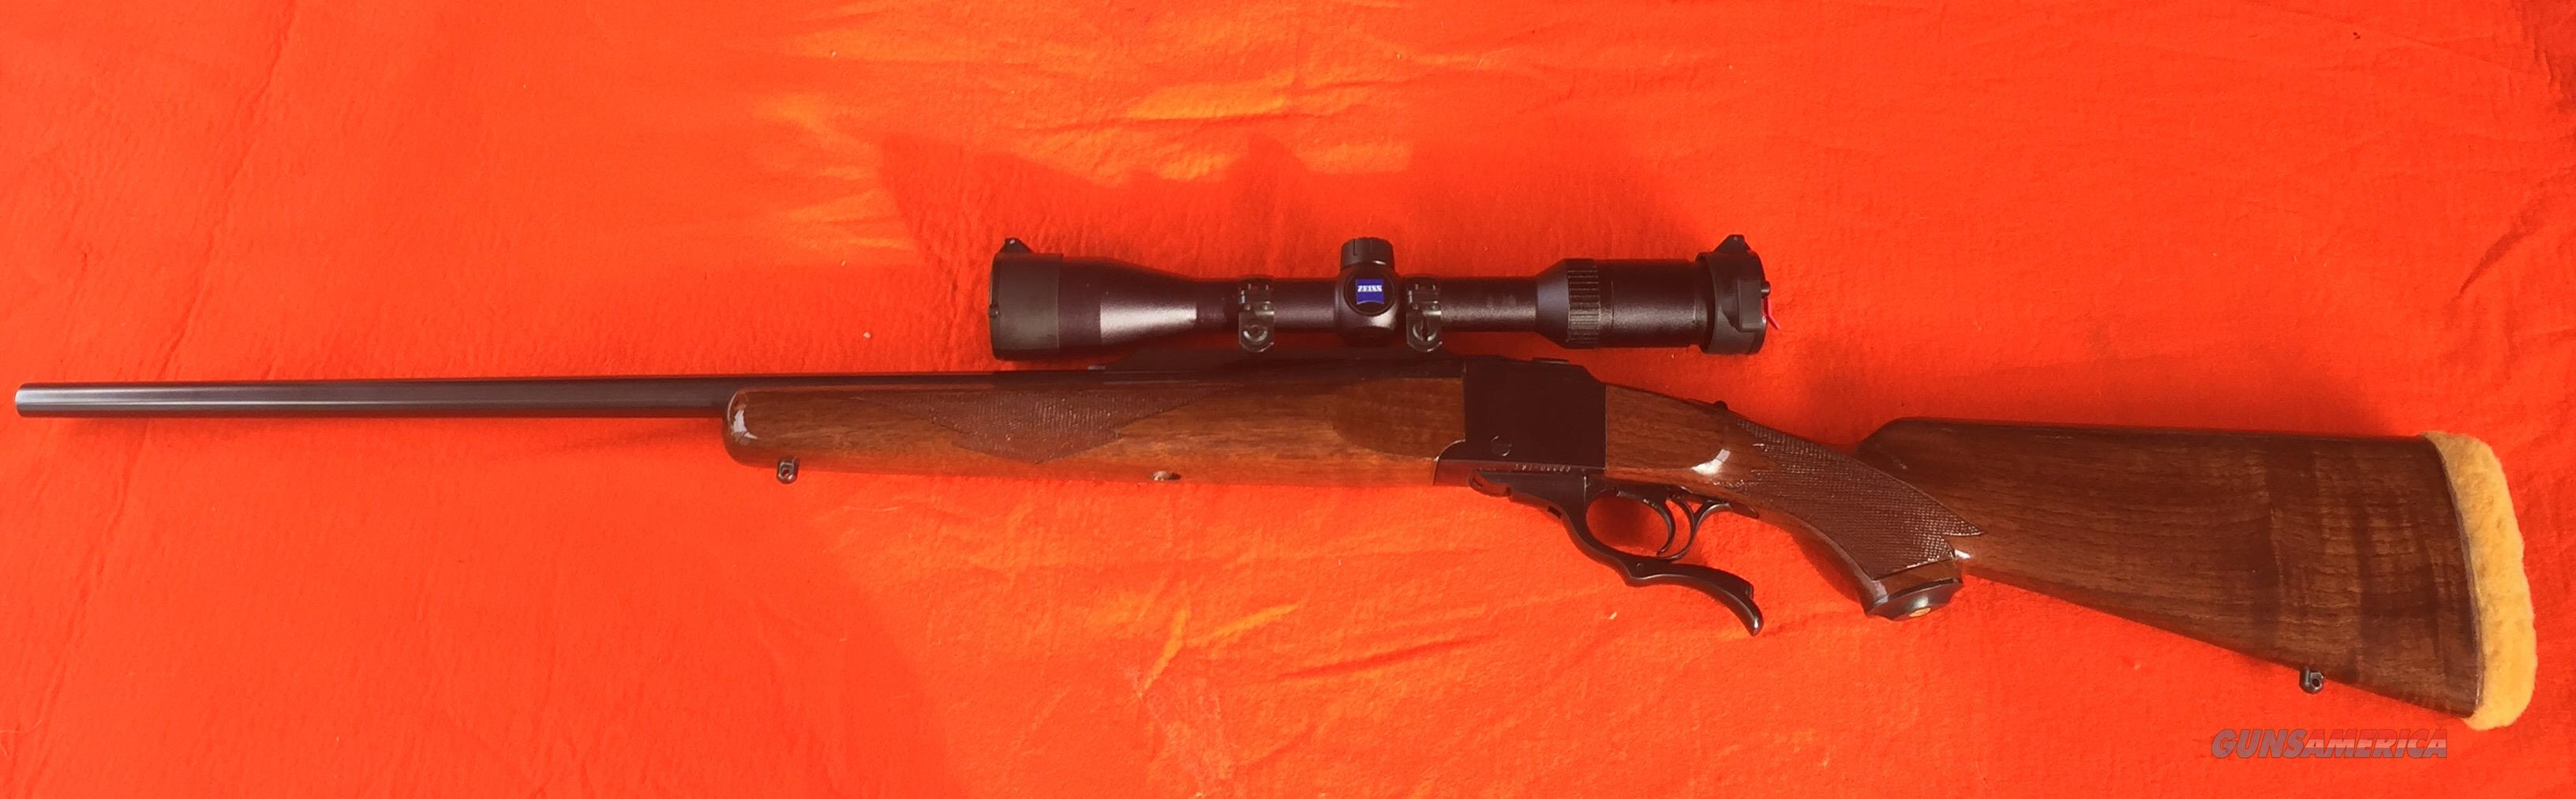 Ruger # 1 257 Roberts  Guns > Rifles > Ruger Rifles > Lever Action